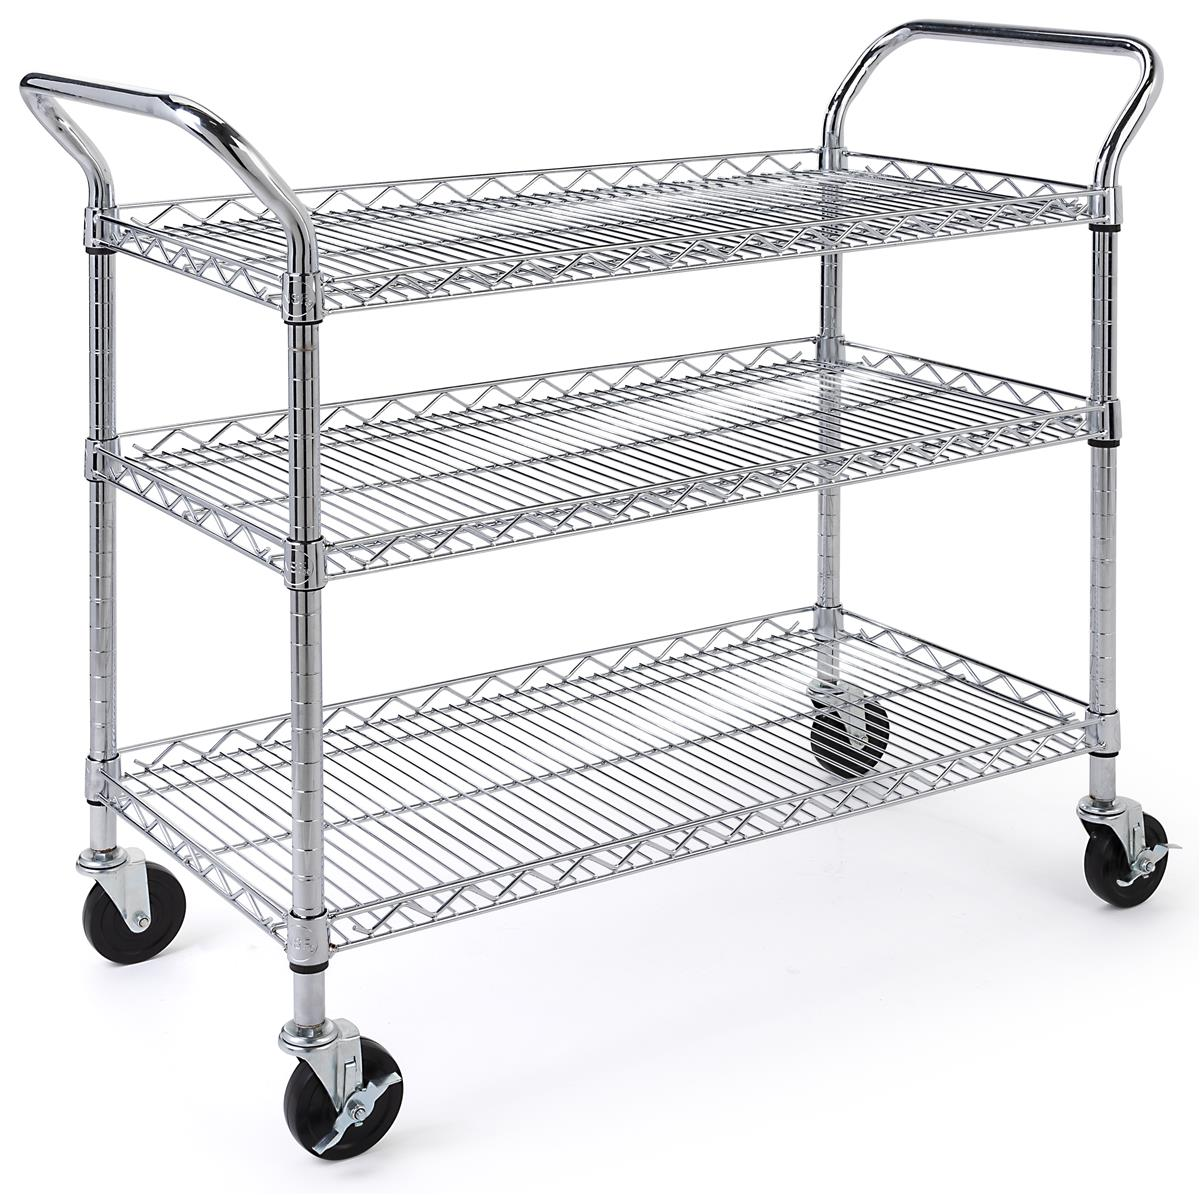 3 Tiered Wire Rack Cart Locking Wheels 35 5 W Adjustable Shelves Chrome